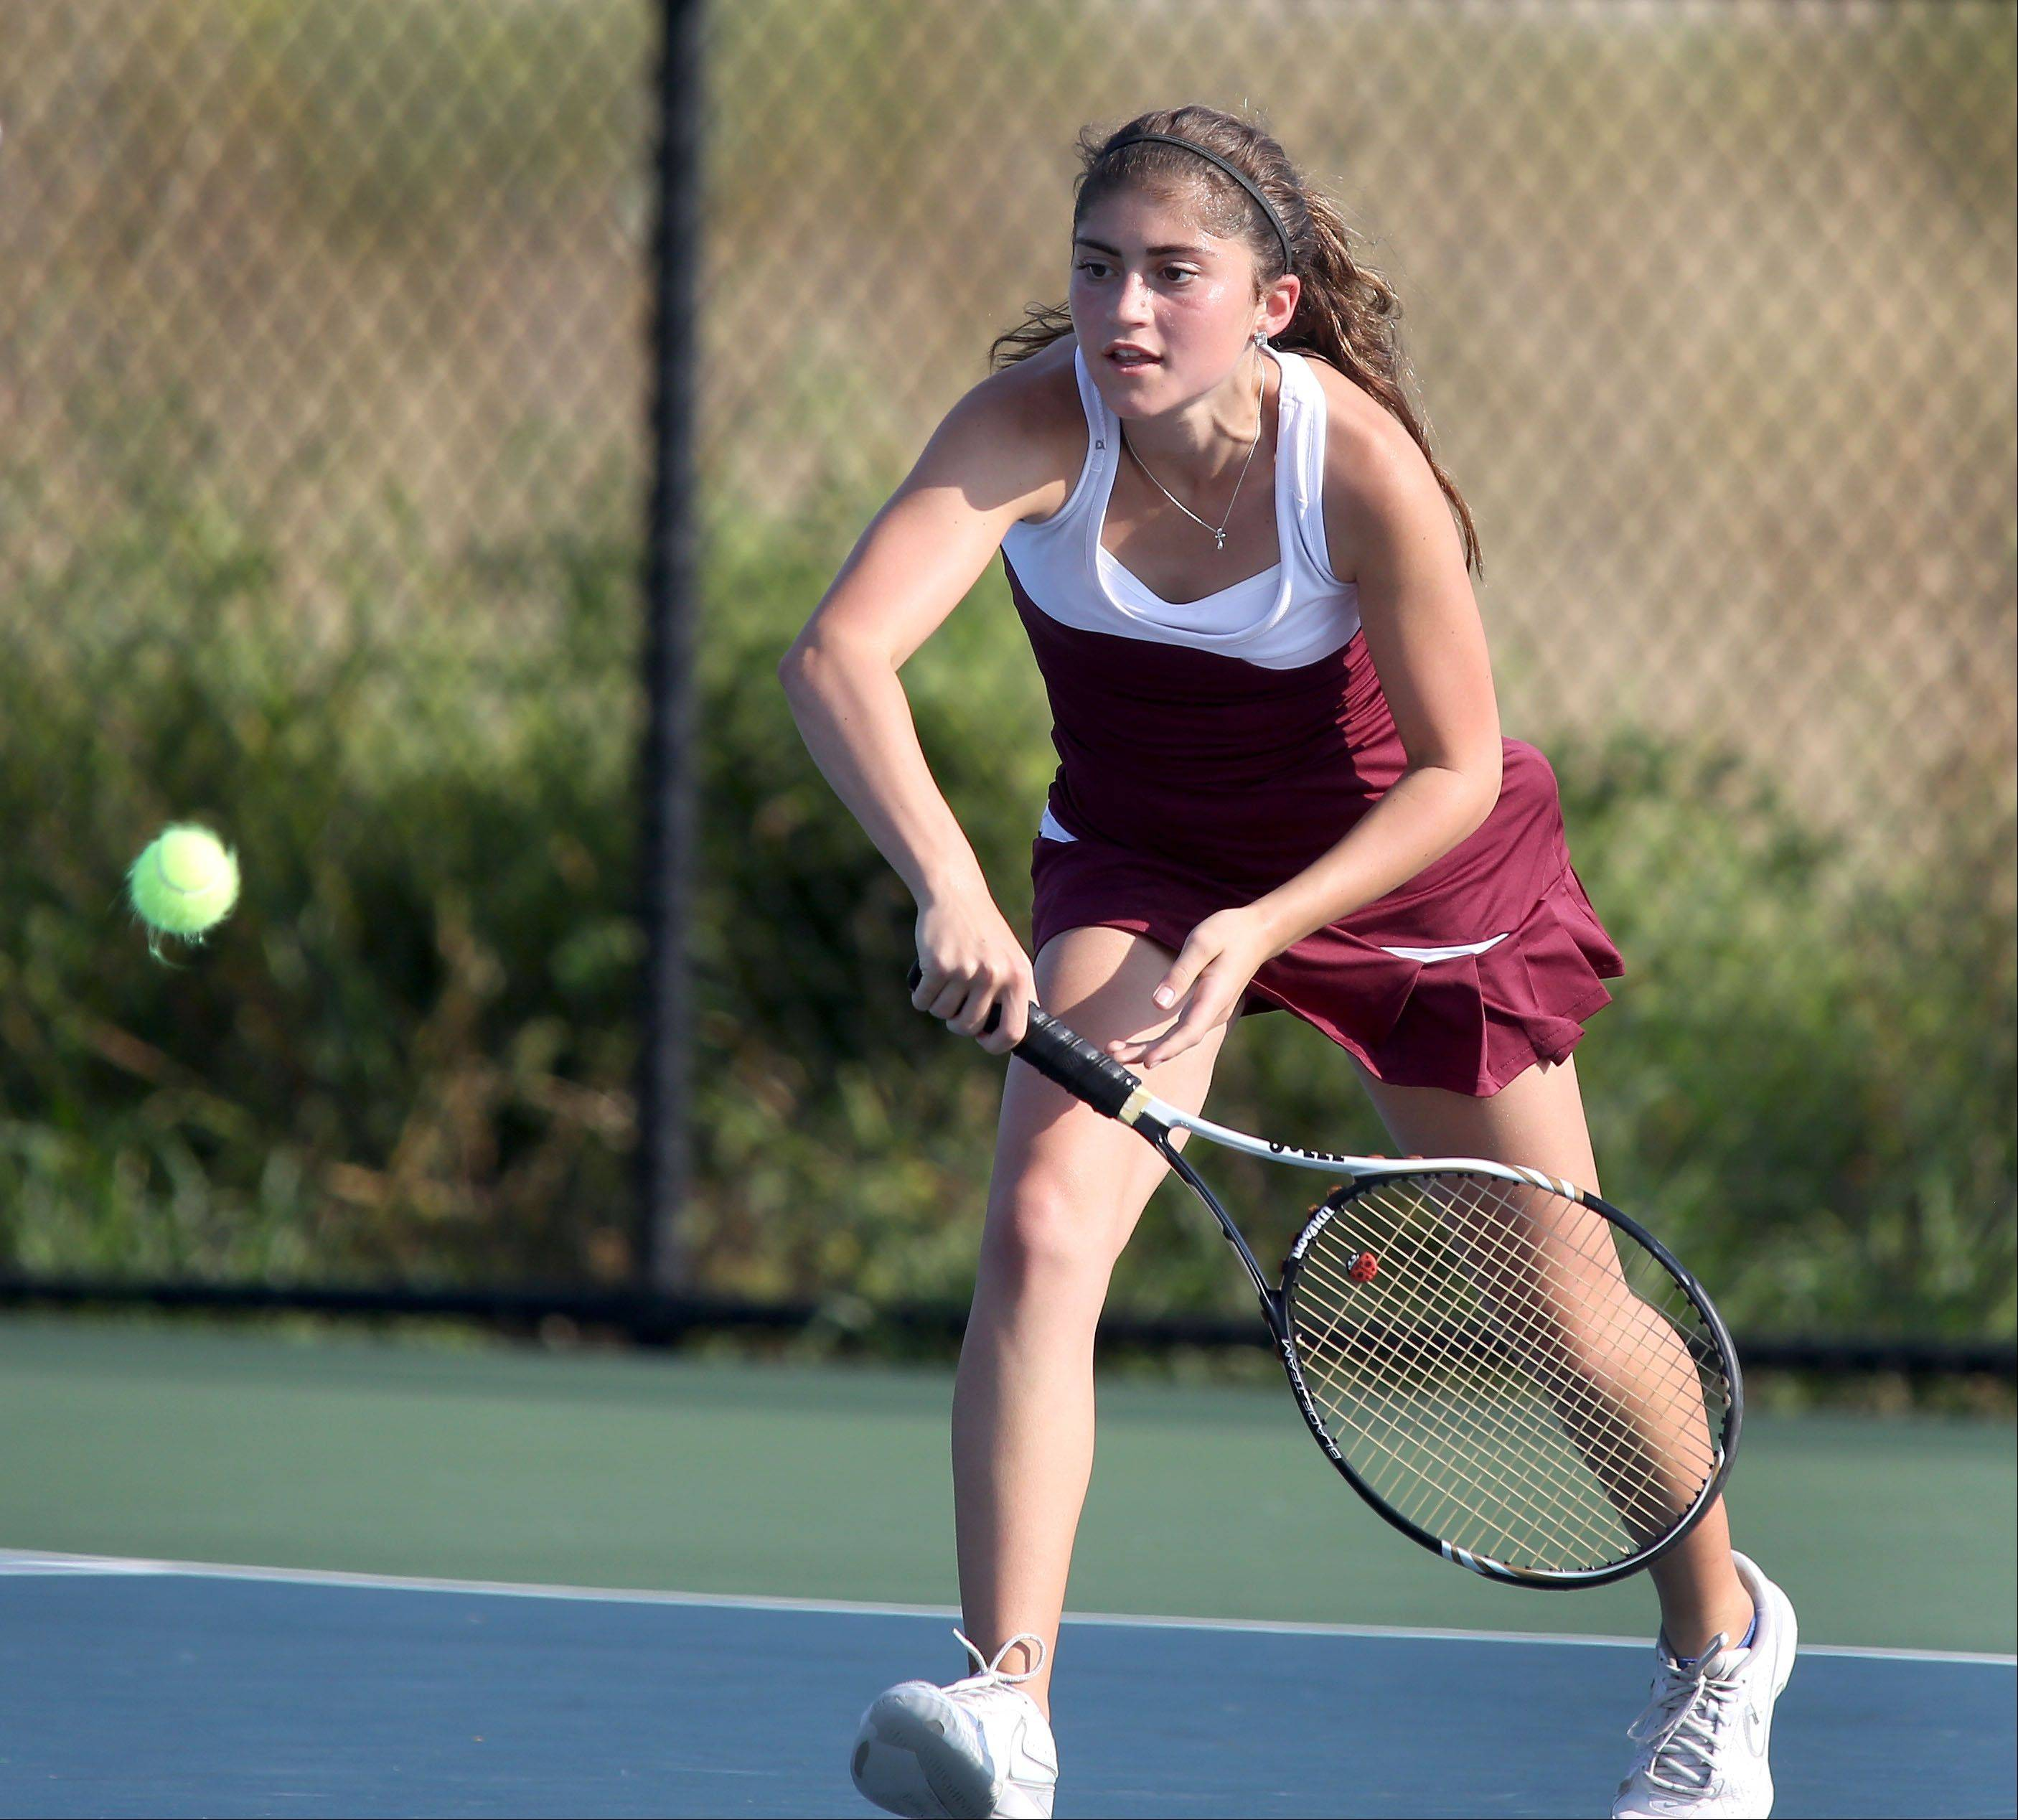 Gabby Stinsa of Montini moves in for a return against Lisle during girls tennis on Monday in Lisle.